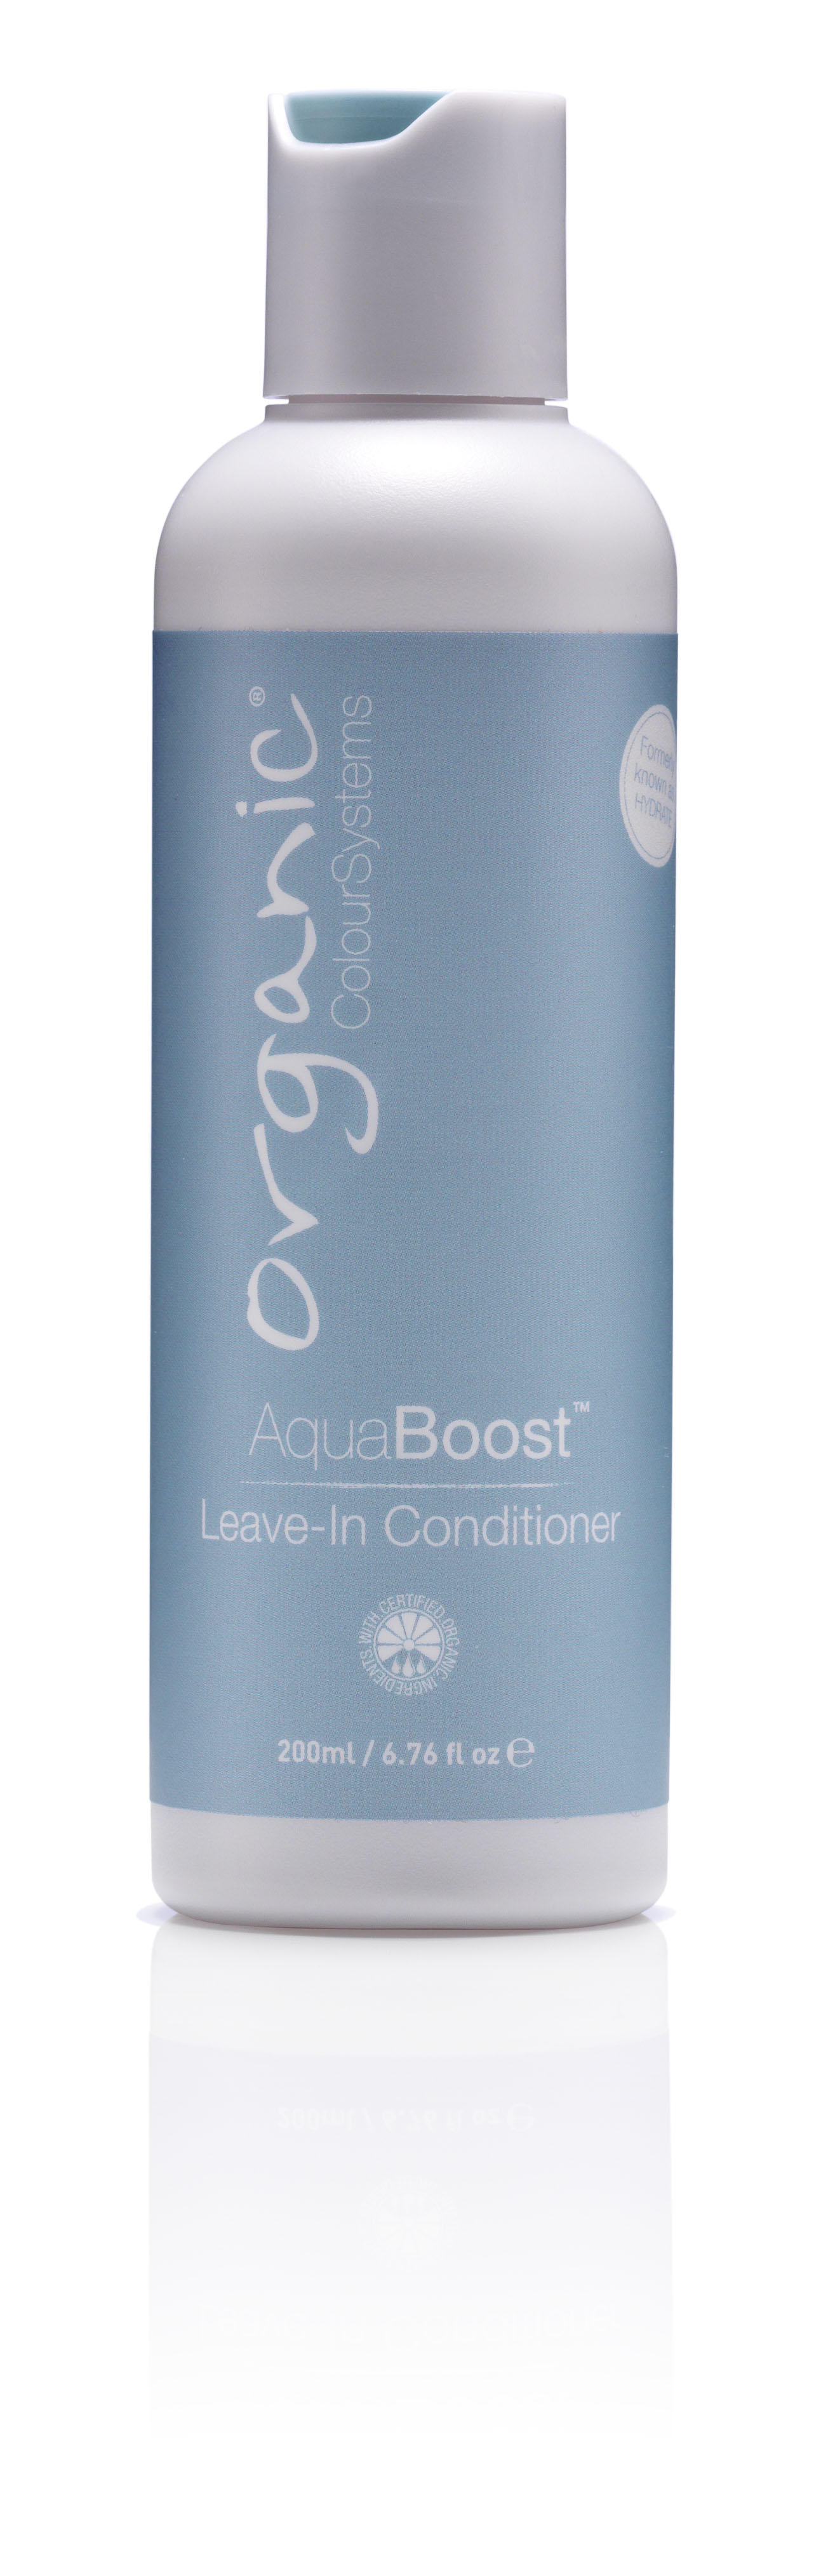 AquaBoost Leave-In Conditioner